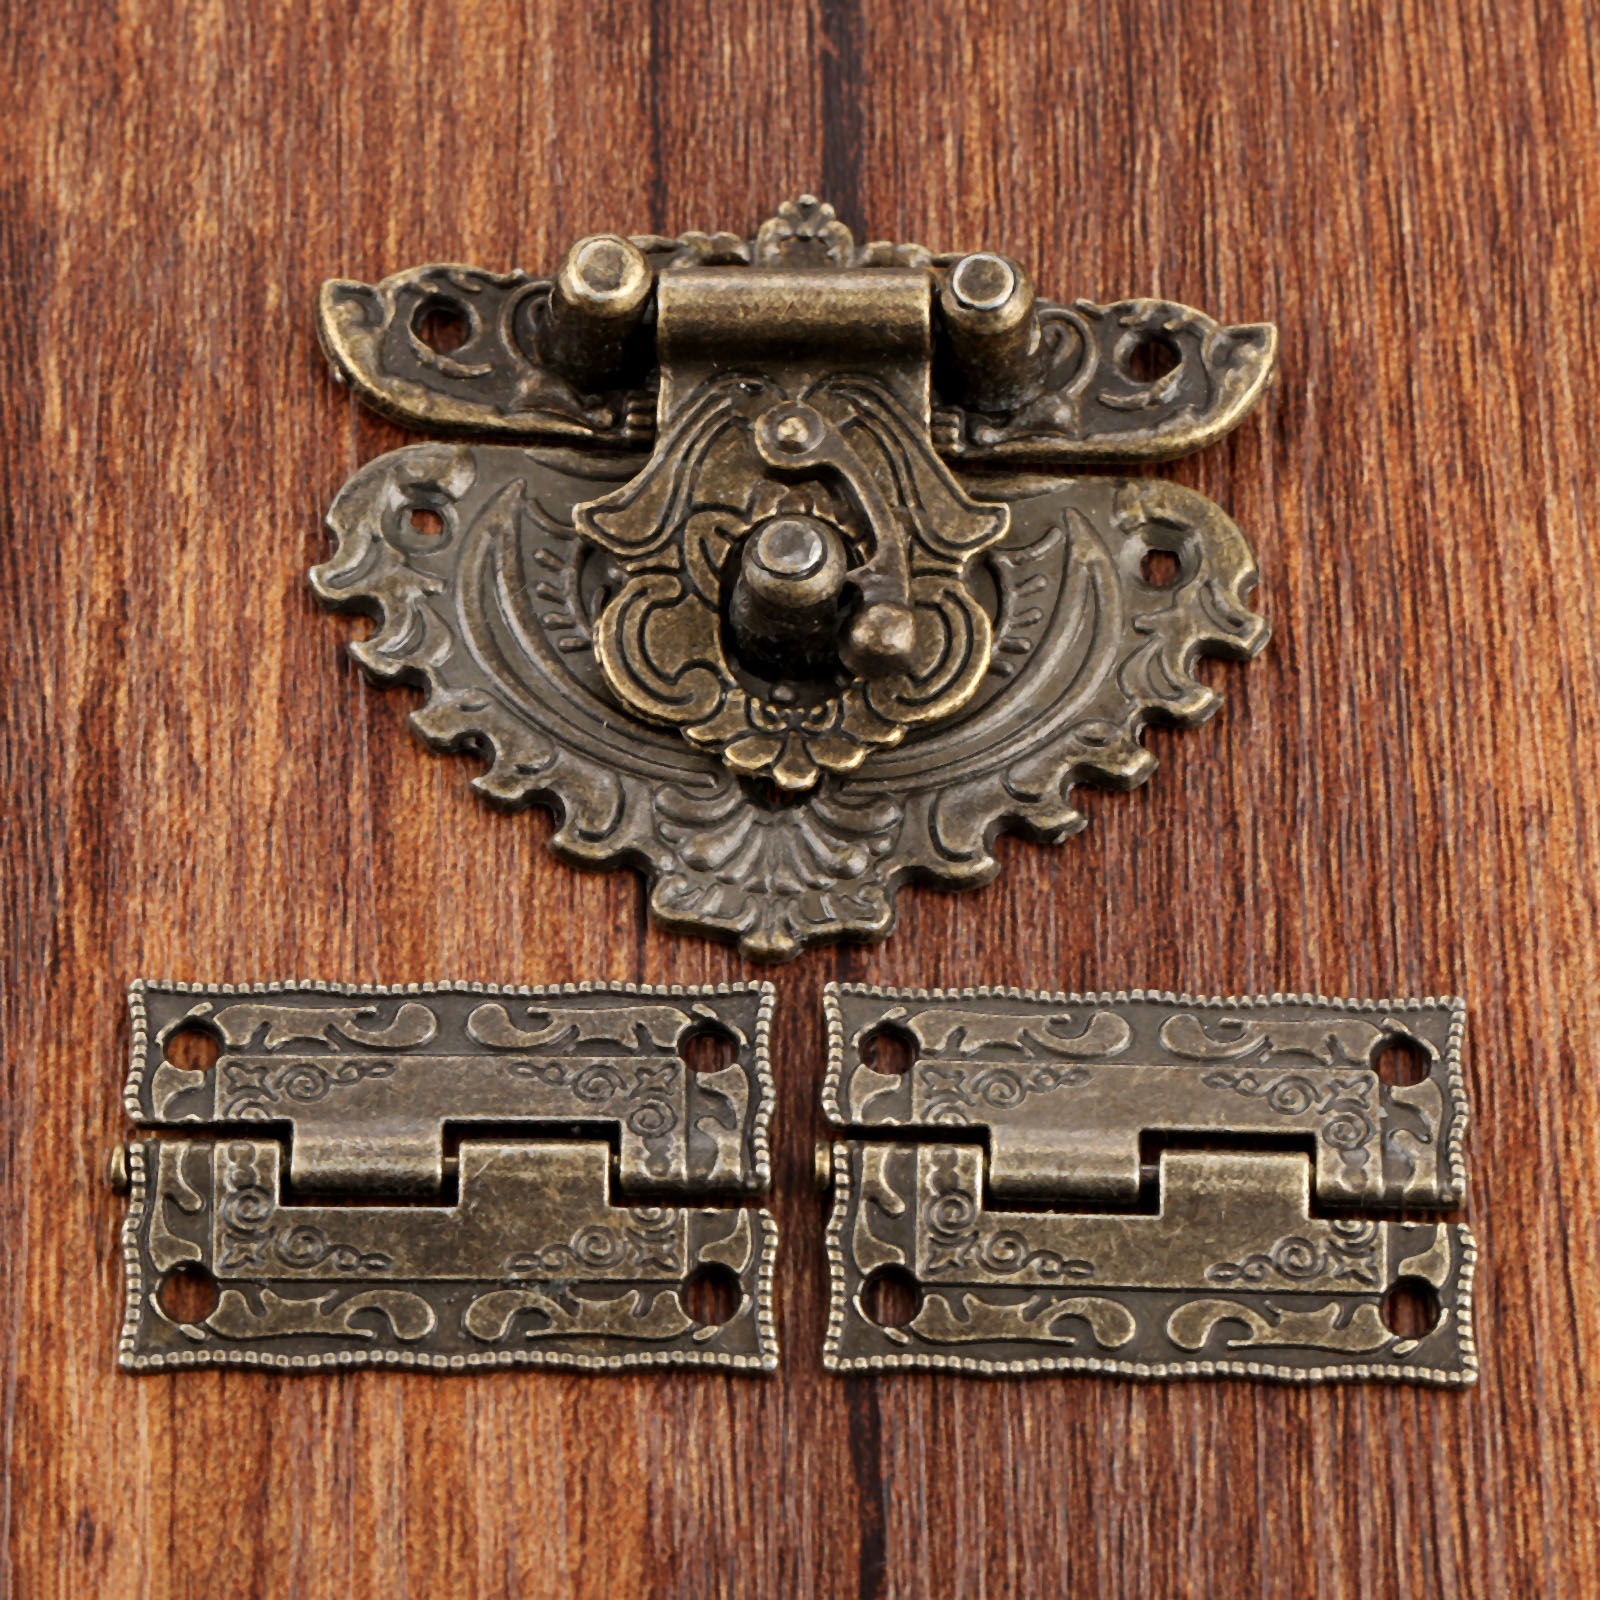 Antique Bronze Furniture Hardware Box Latch Hasp Locks Toggle Buckle 2Pcs Decorative Cabinet Hinges For Jewelry Wooden Box